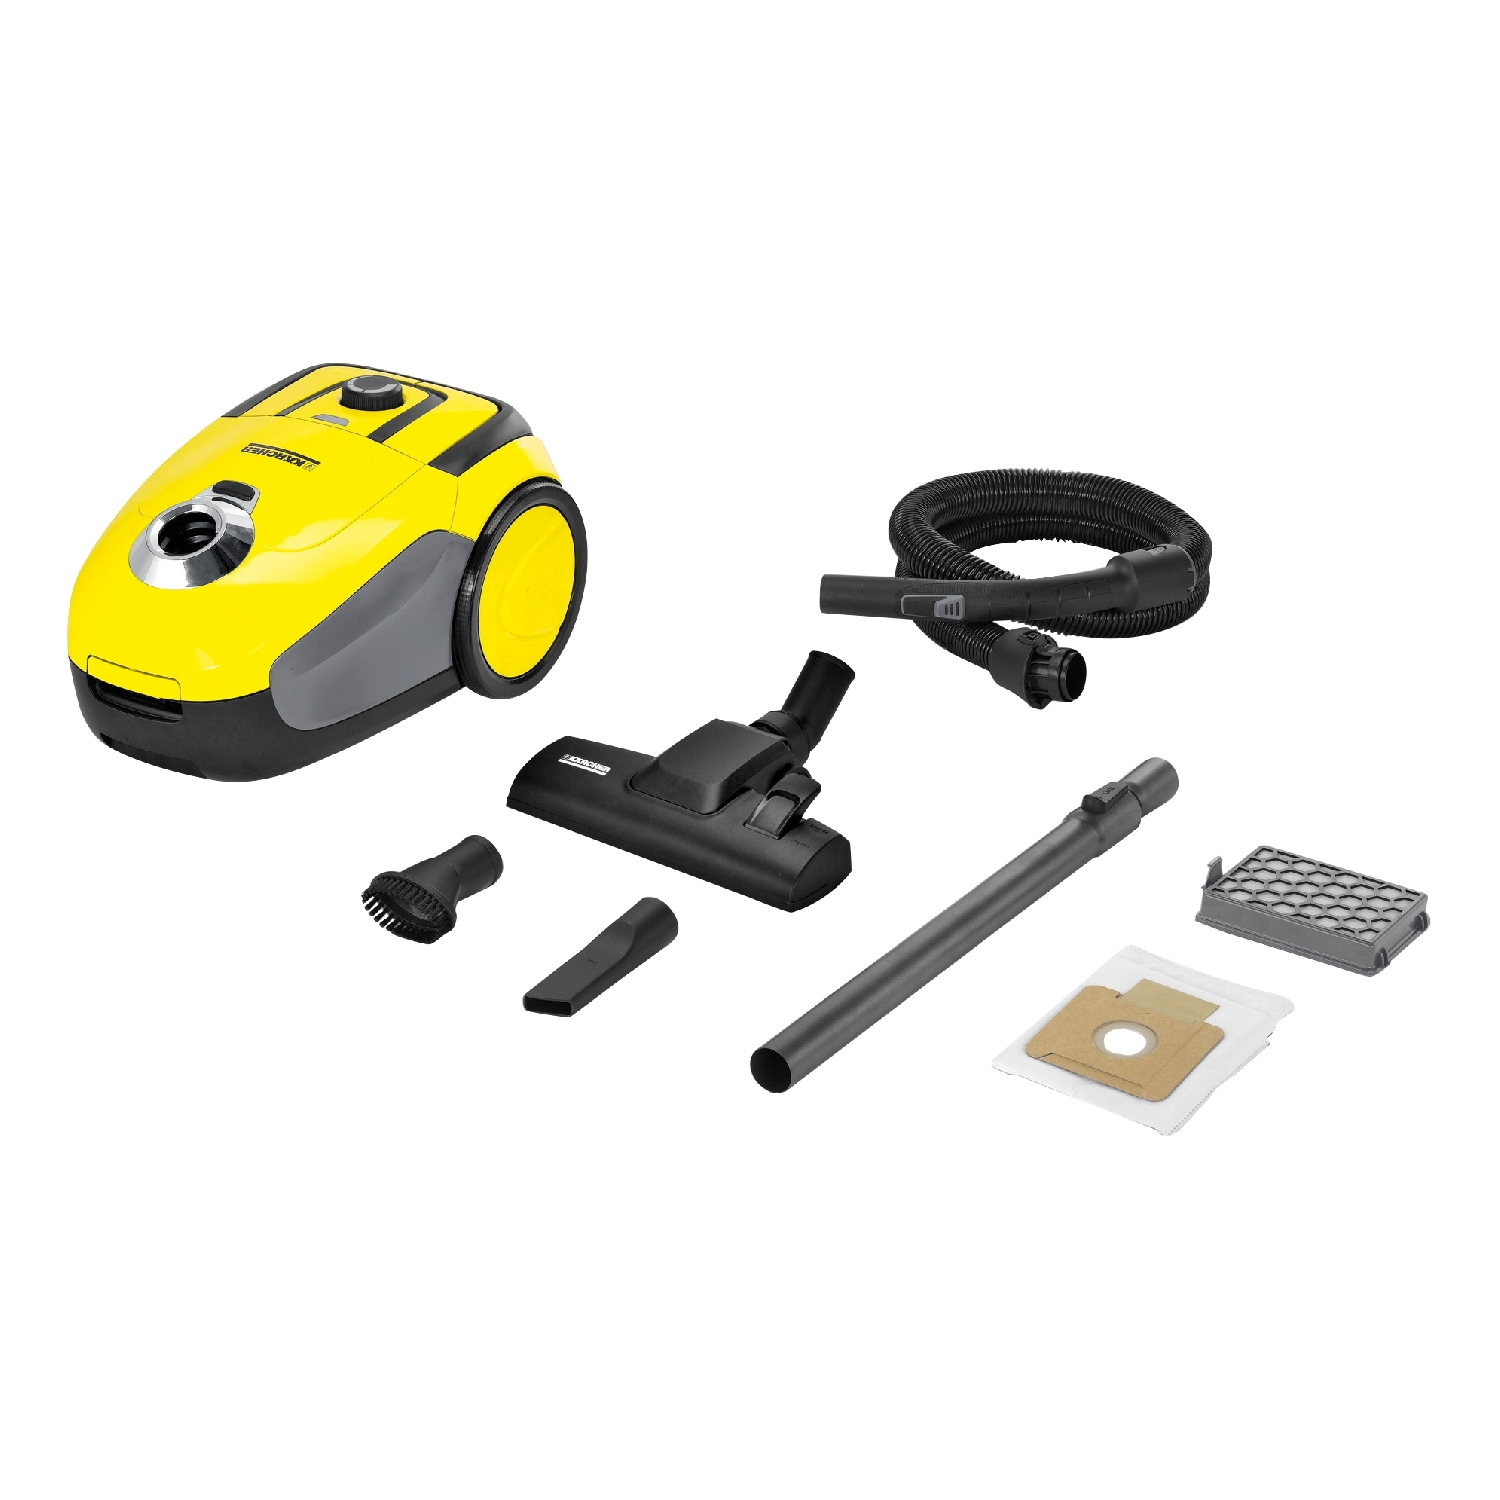 Electric vacuum cleaner KARCHER VC 2